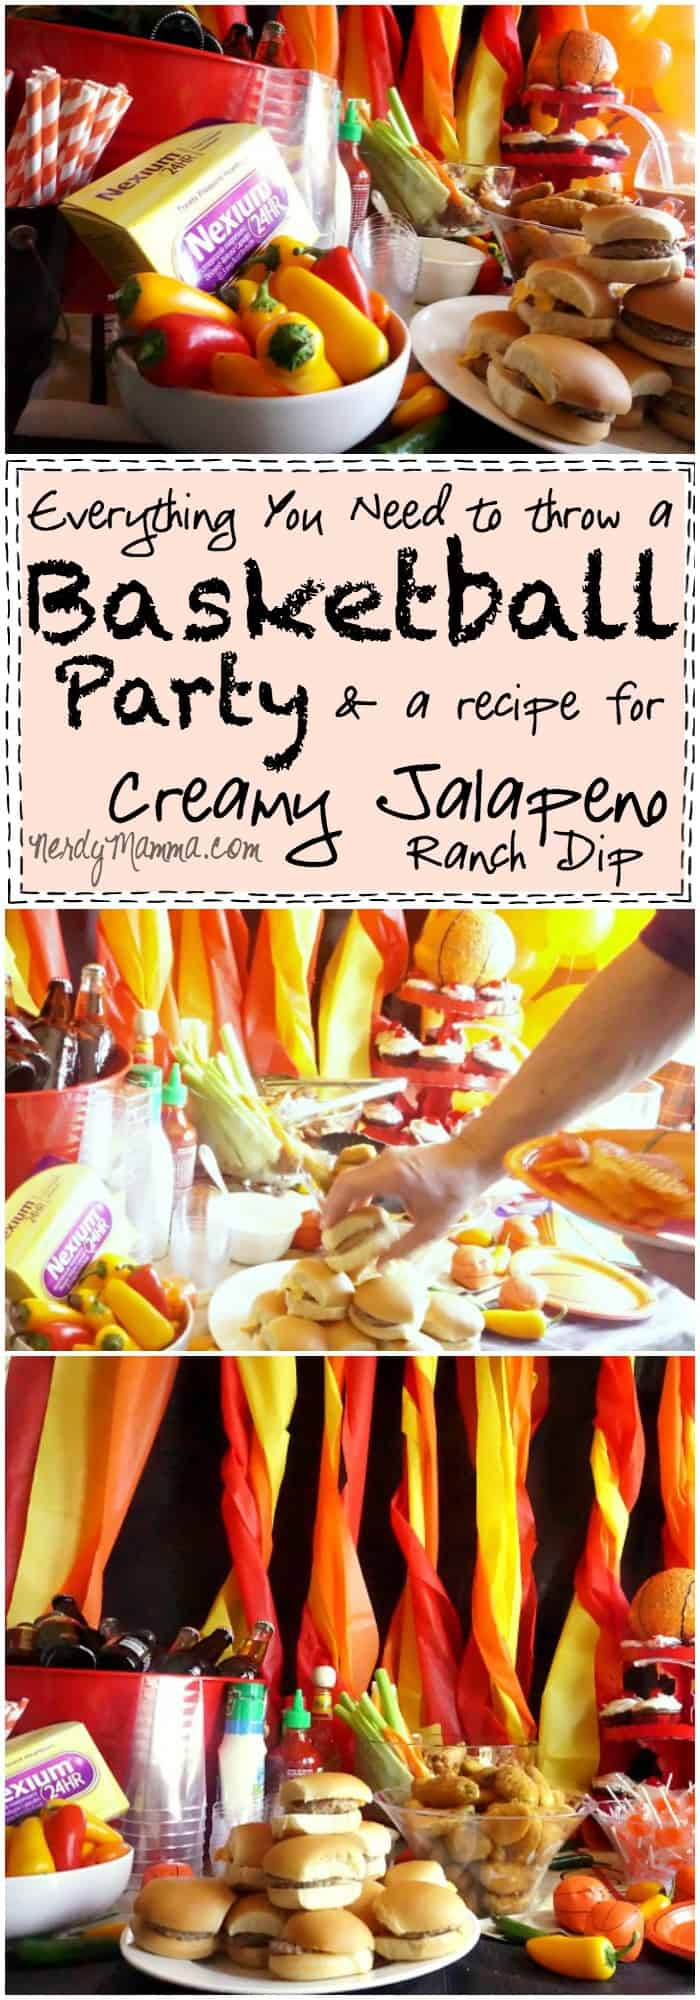 Need to throw a Basketball Party Don't worry--this tutorial has you covered! Everything You Need to Throw a Basketball Party--and a recipe for Creamy Jalapeno Ranch Dip. Mmmm...